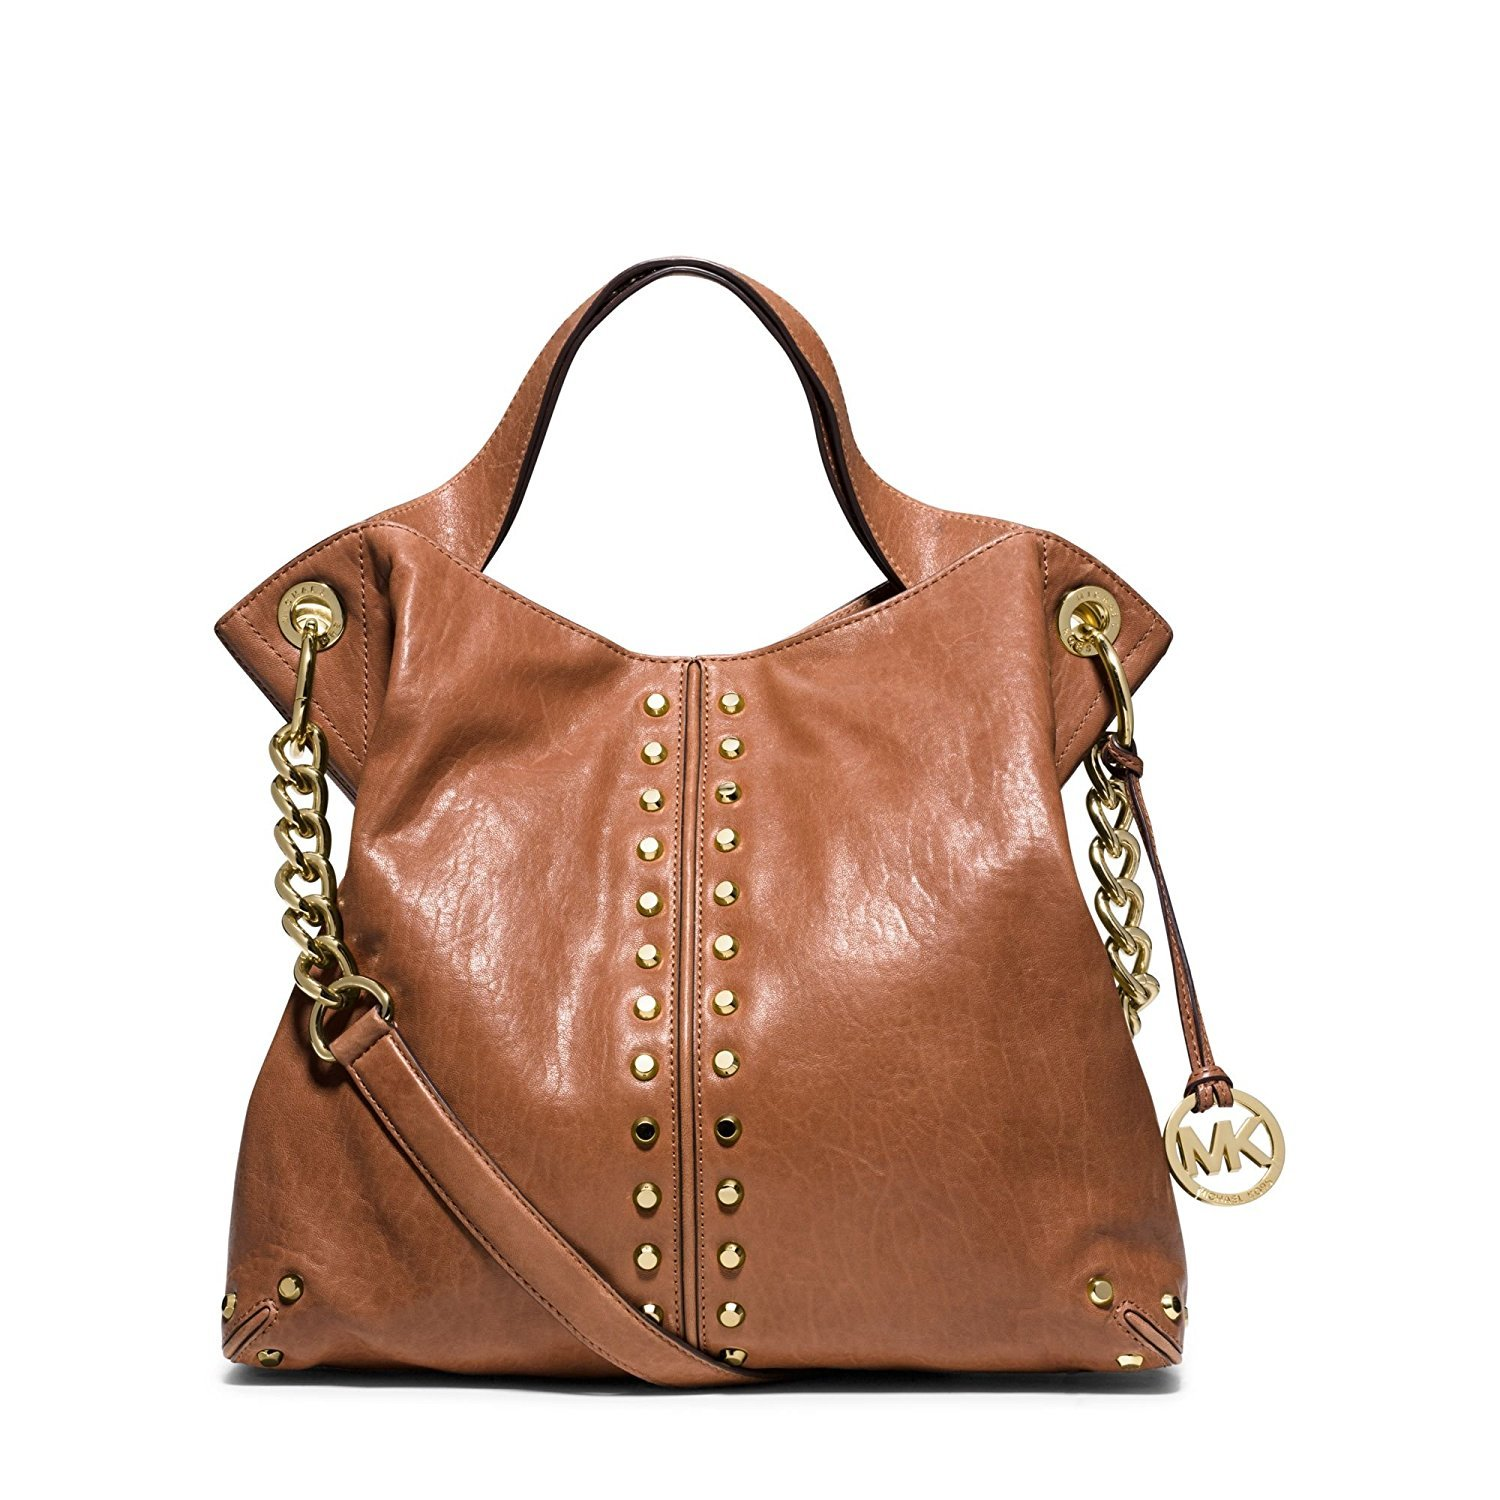 4cf9e7420727 MICHAEL MICHAEL KORS Astor Leather Shoulder Handbag (Walnut)  Handbags   Amazon.com